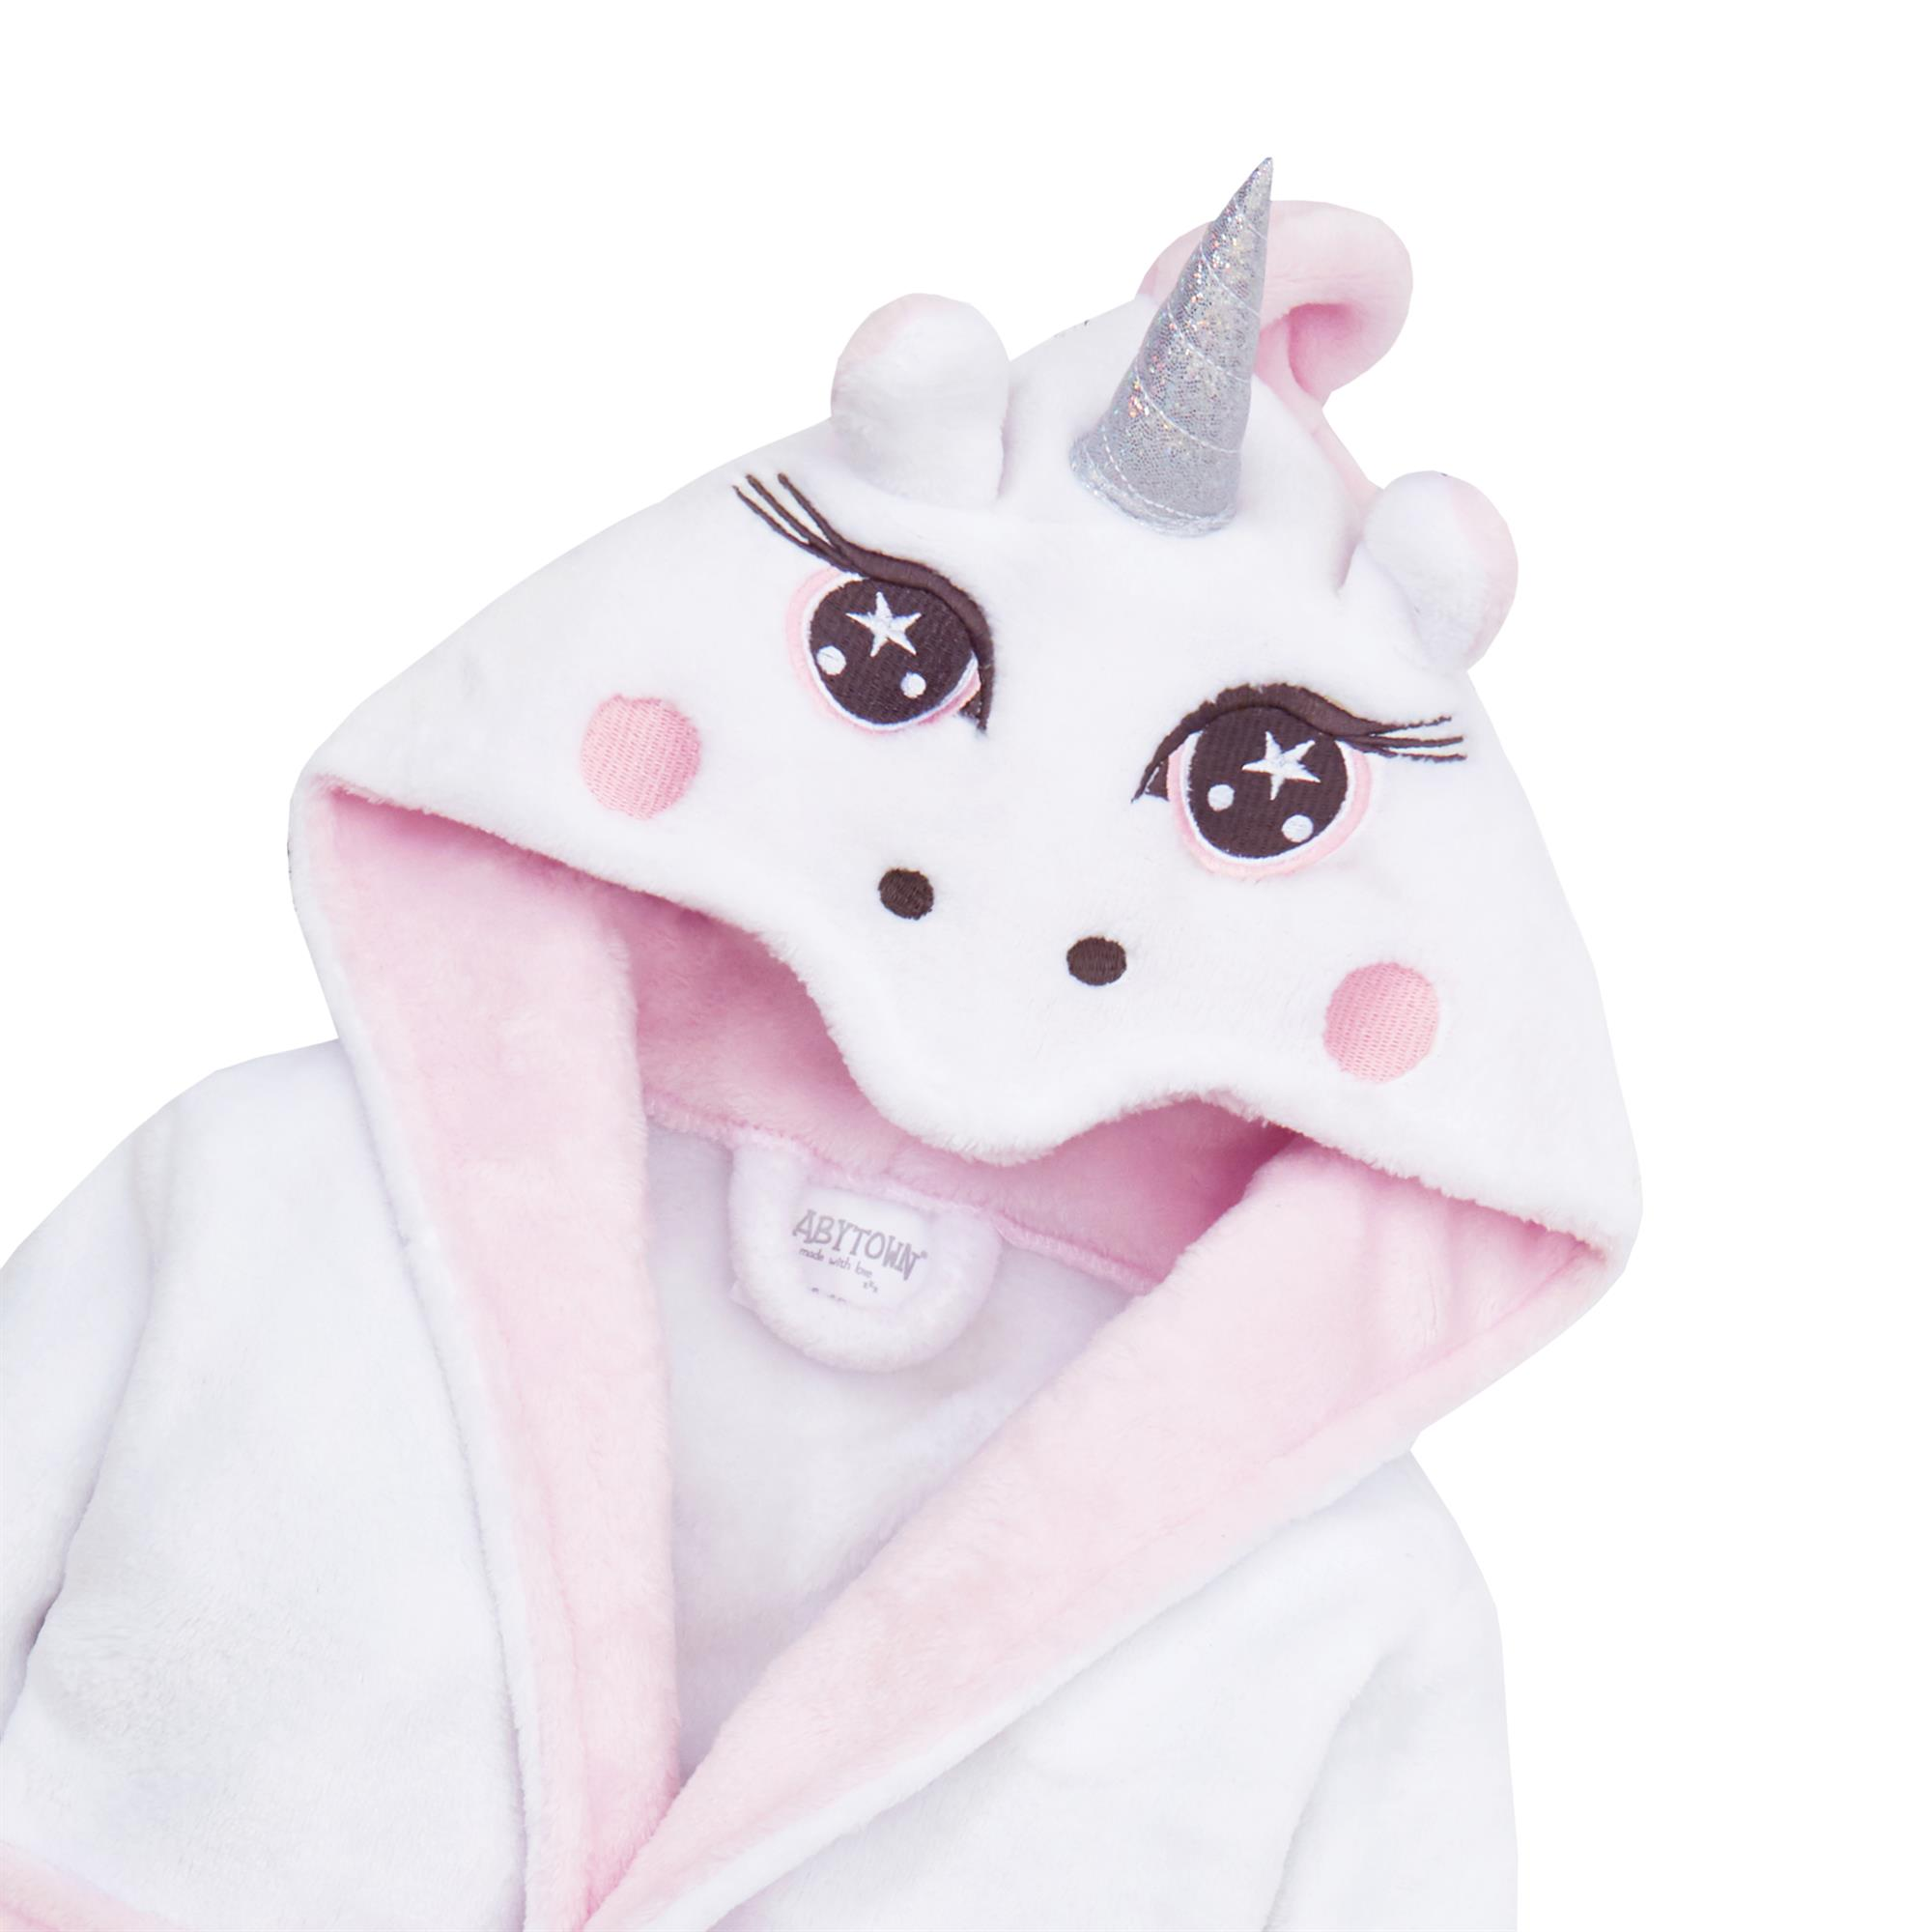 Babies Dressing Gown with Novelty Unicorn Hood